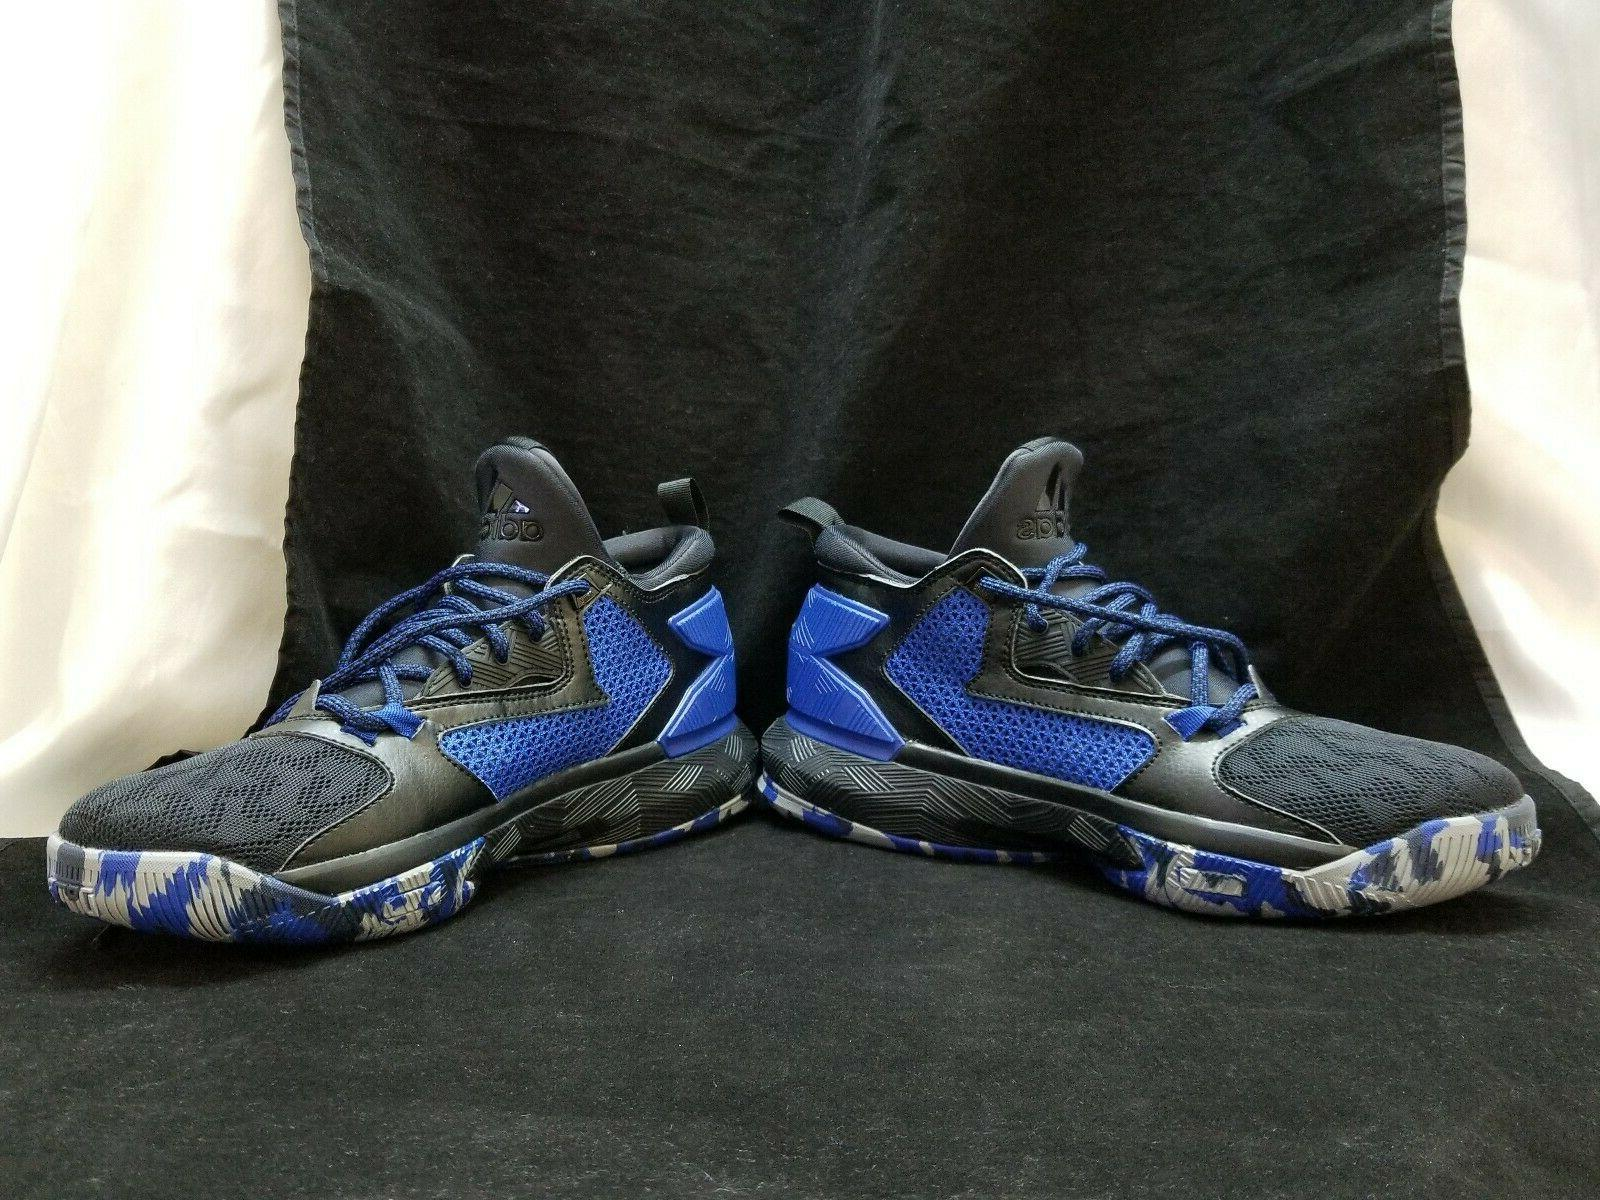 NEW Mens Adidas Stable Frame Blue Camo Shoes Size